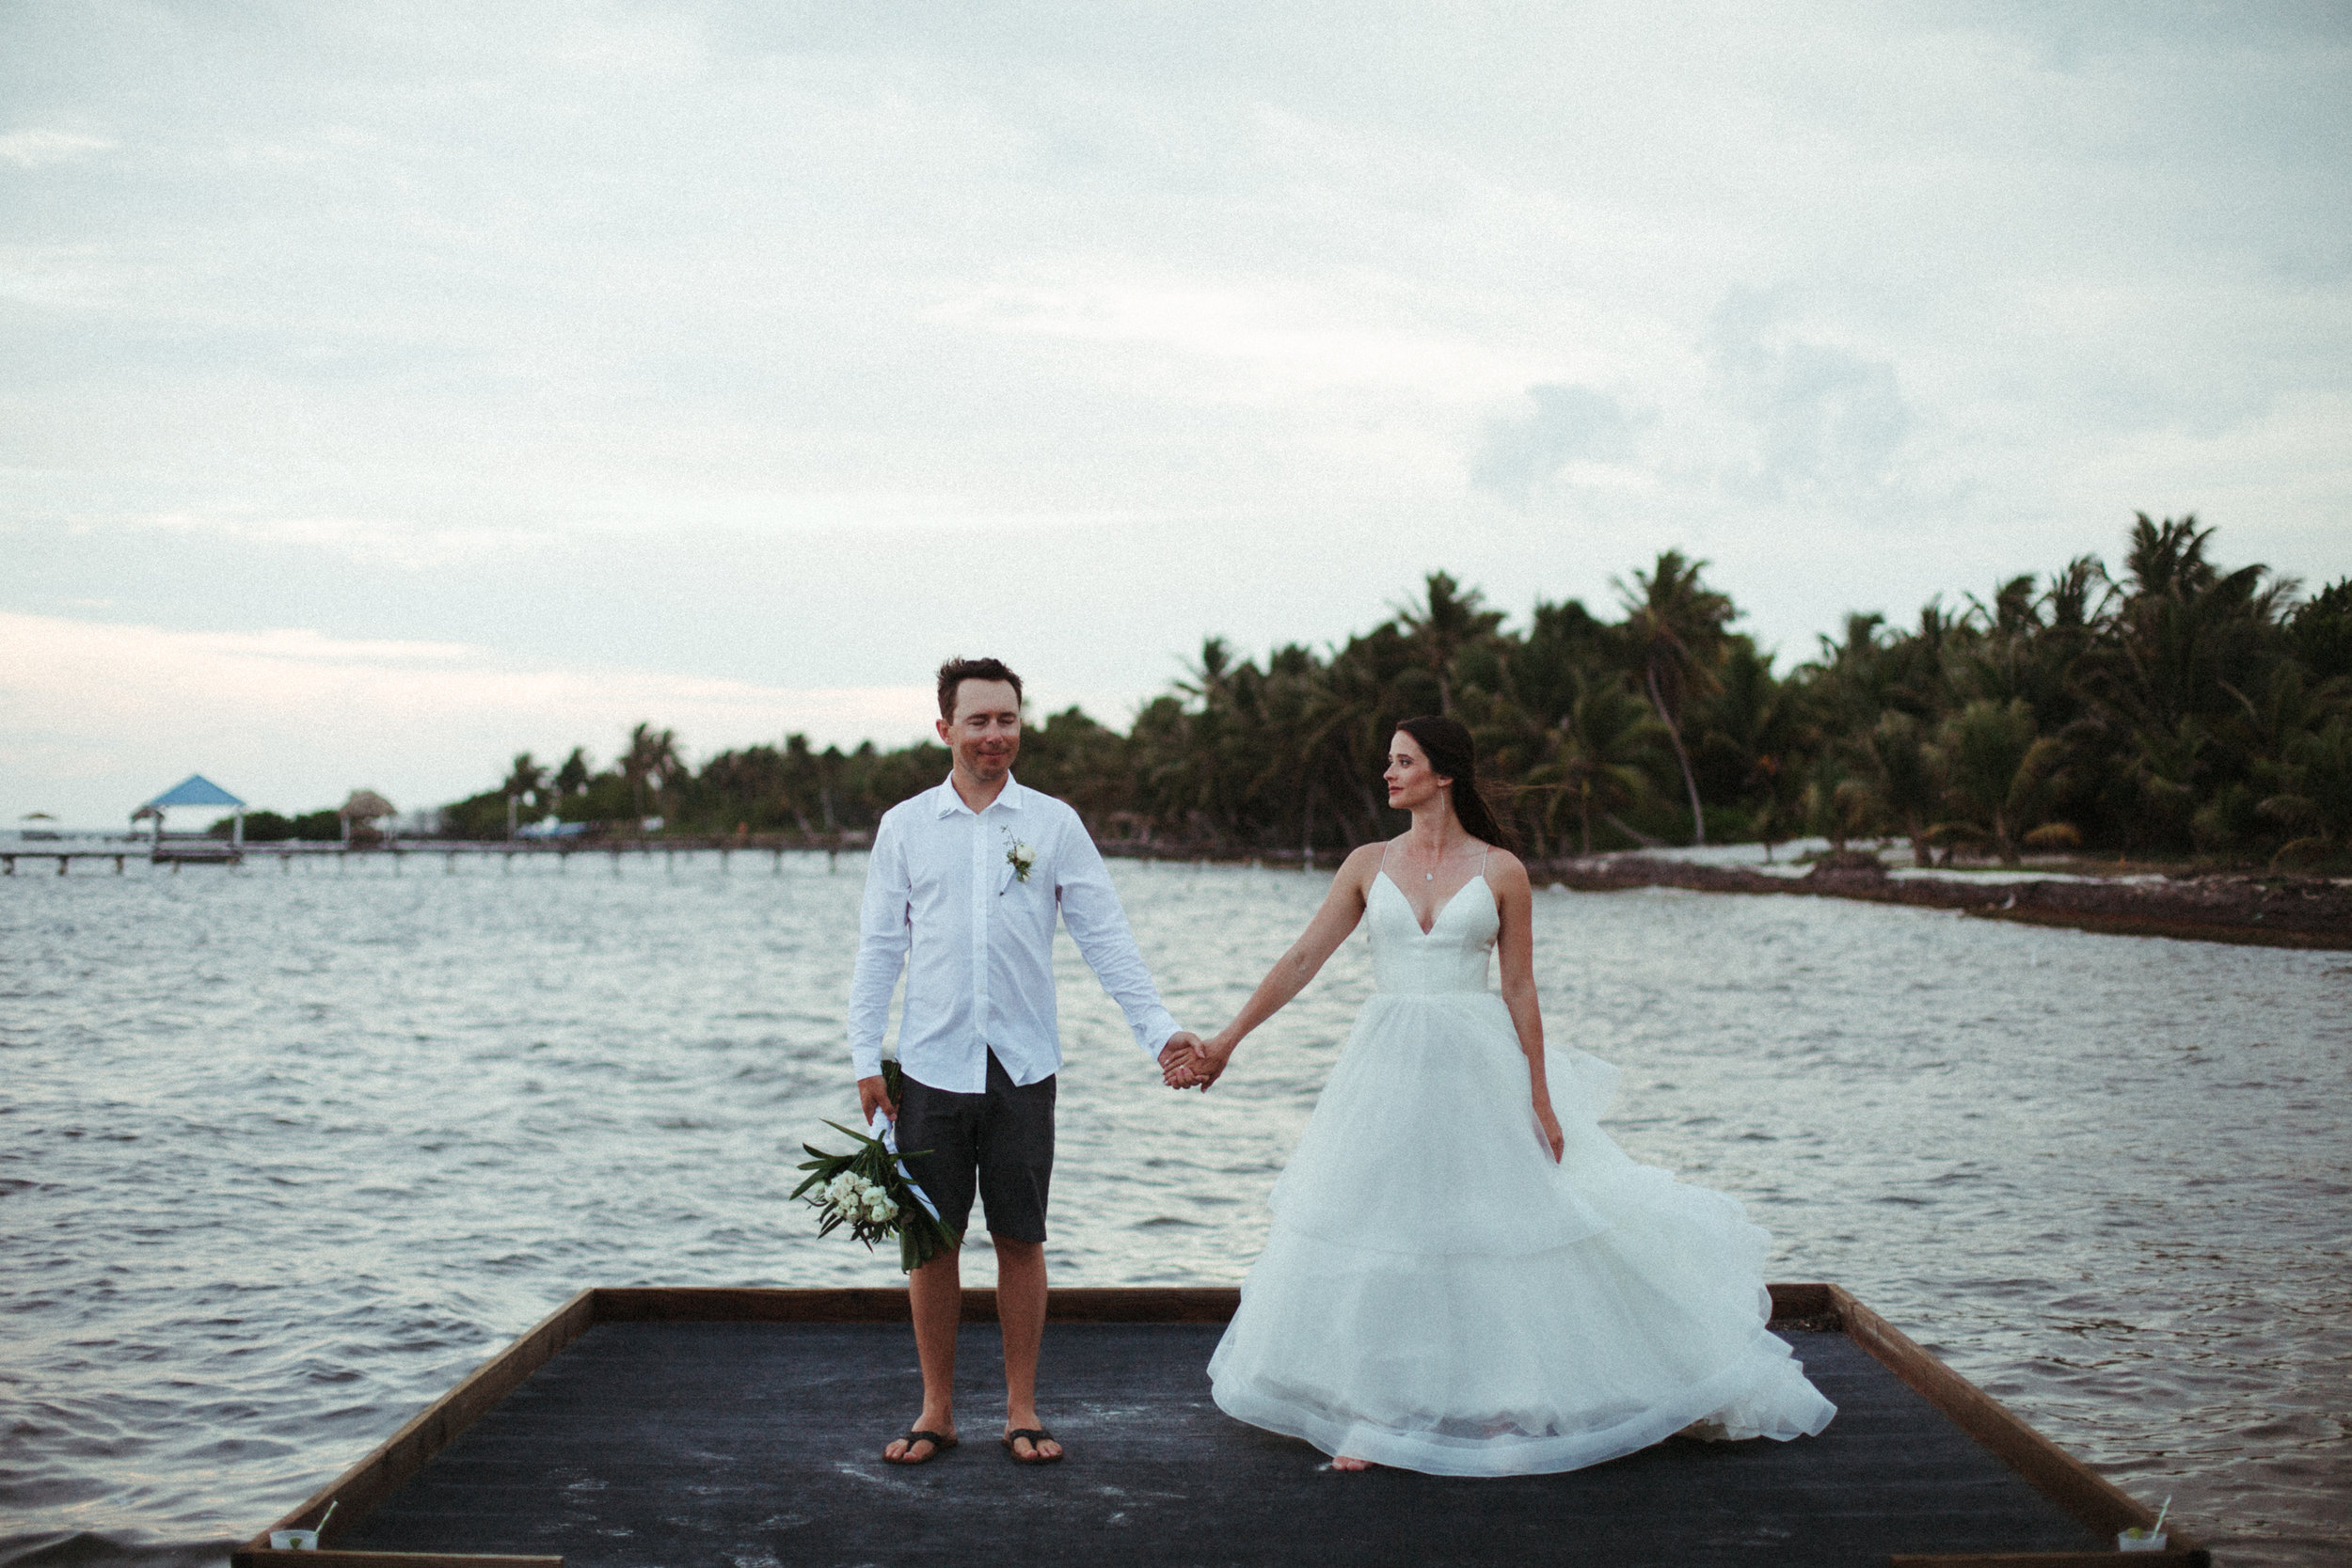 san-pescador-belize-wedding-christinemariephoto-j-k-134.jpg